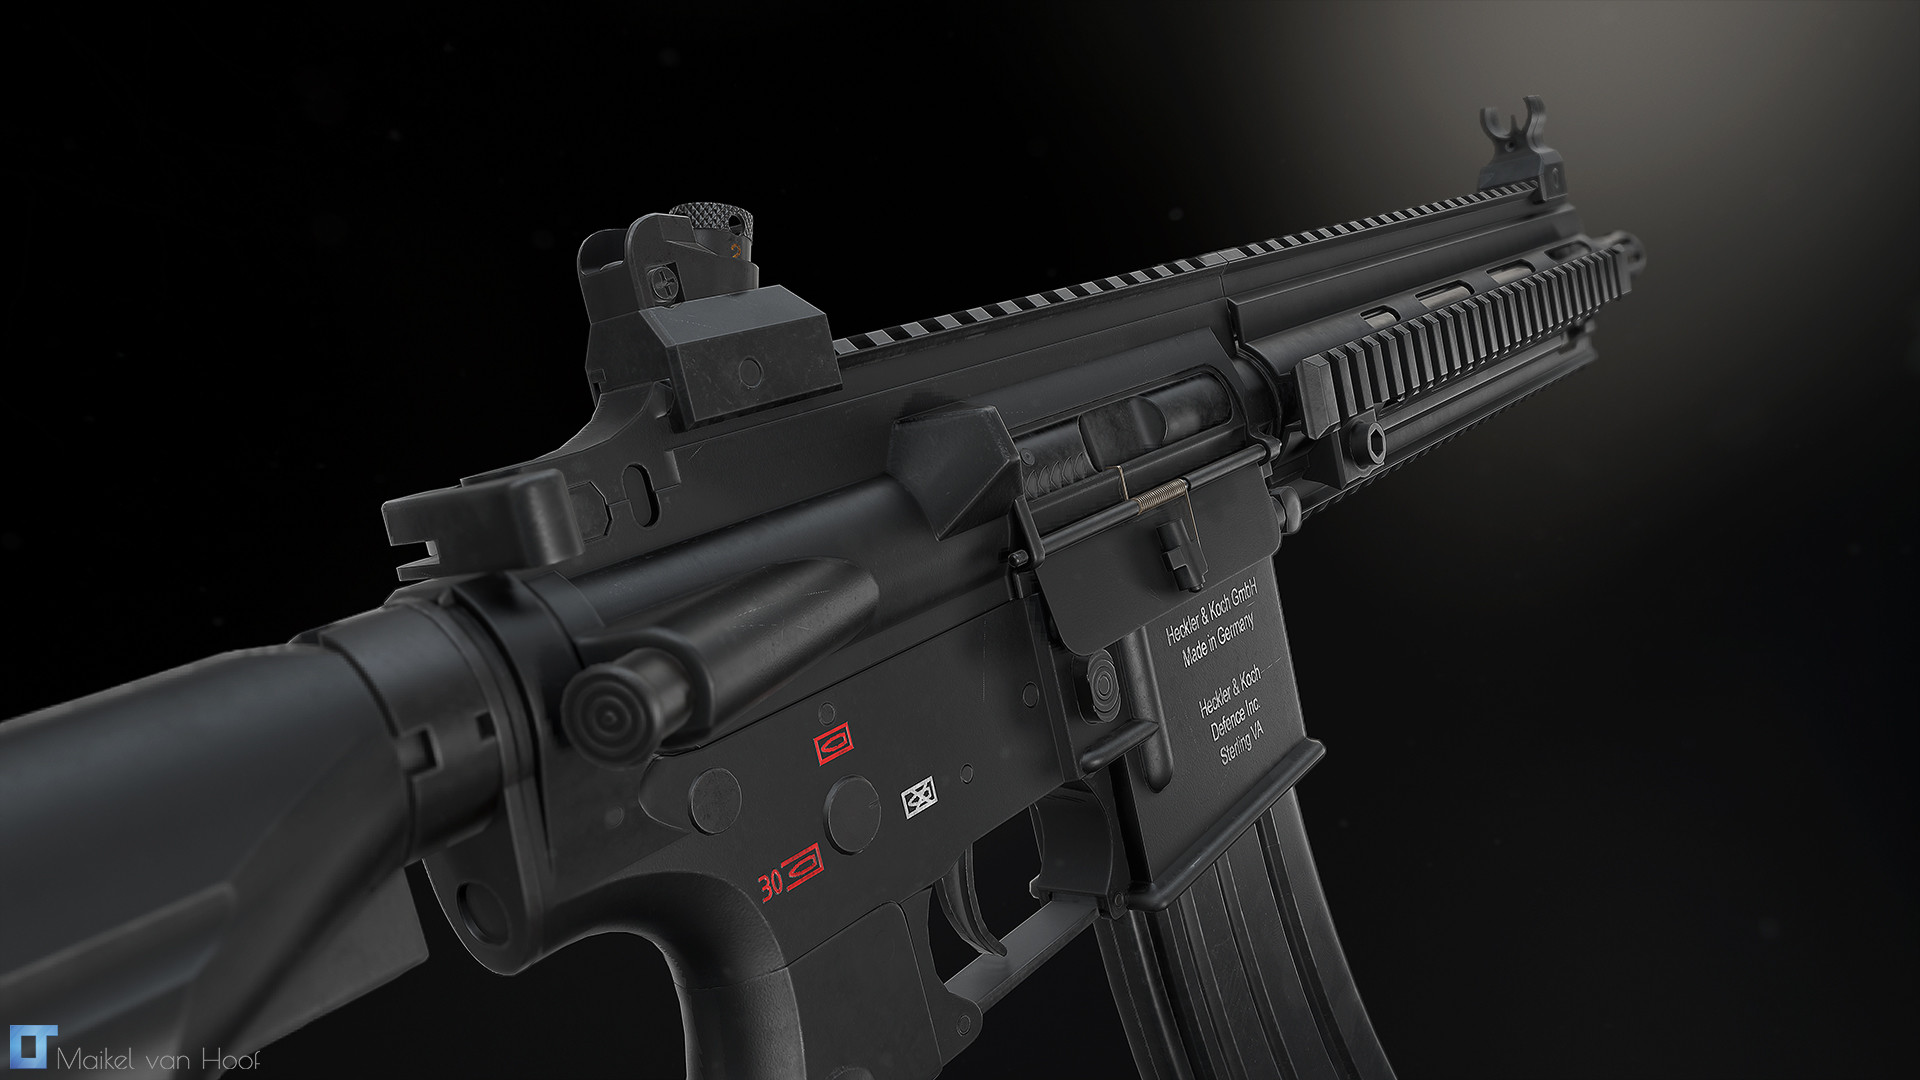 Pubg Gun Wallpapers Hk416 Work In Progress